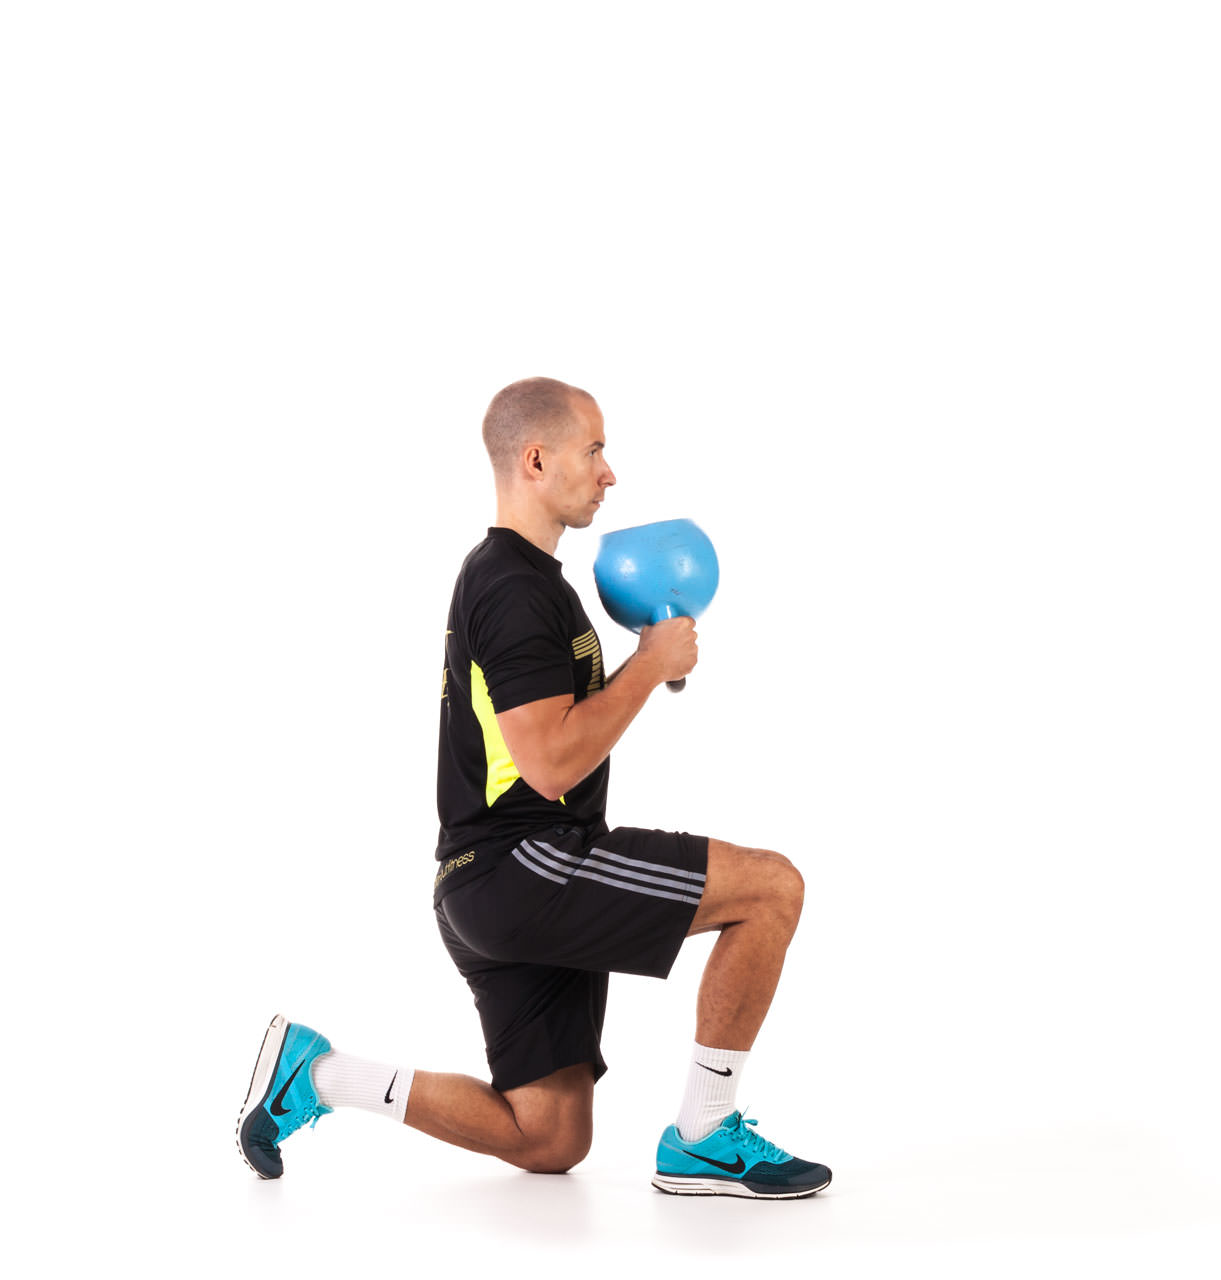 Kettlebell Kneeling to Stand Up frame #4